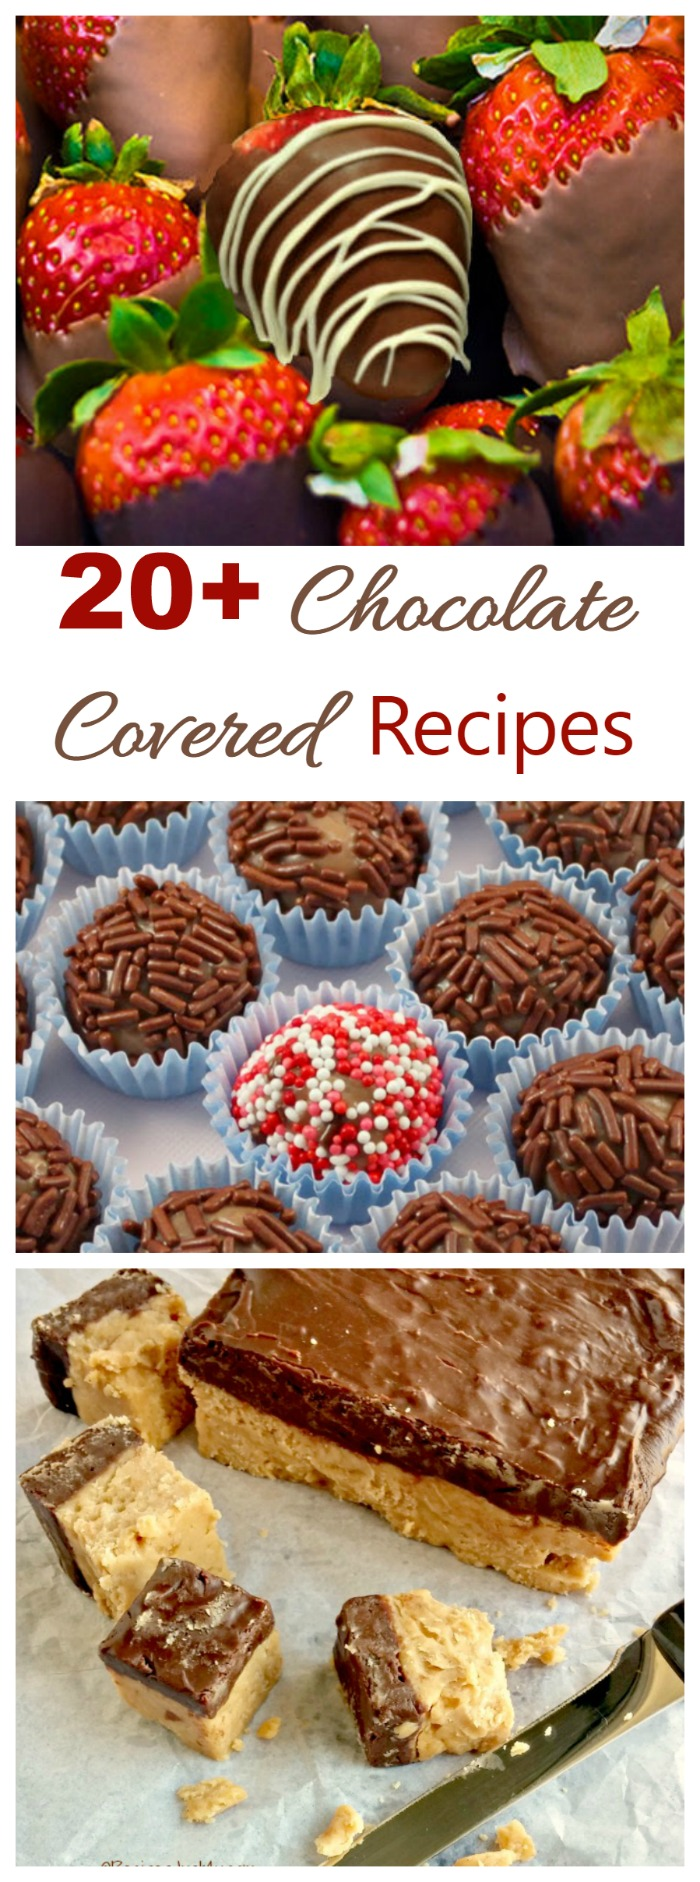 These 20+ Chocolate Covered Recipes are sure to tempt your sweet tooth. There are bars, cake, truffles, and candy recipes galore.